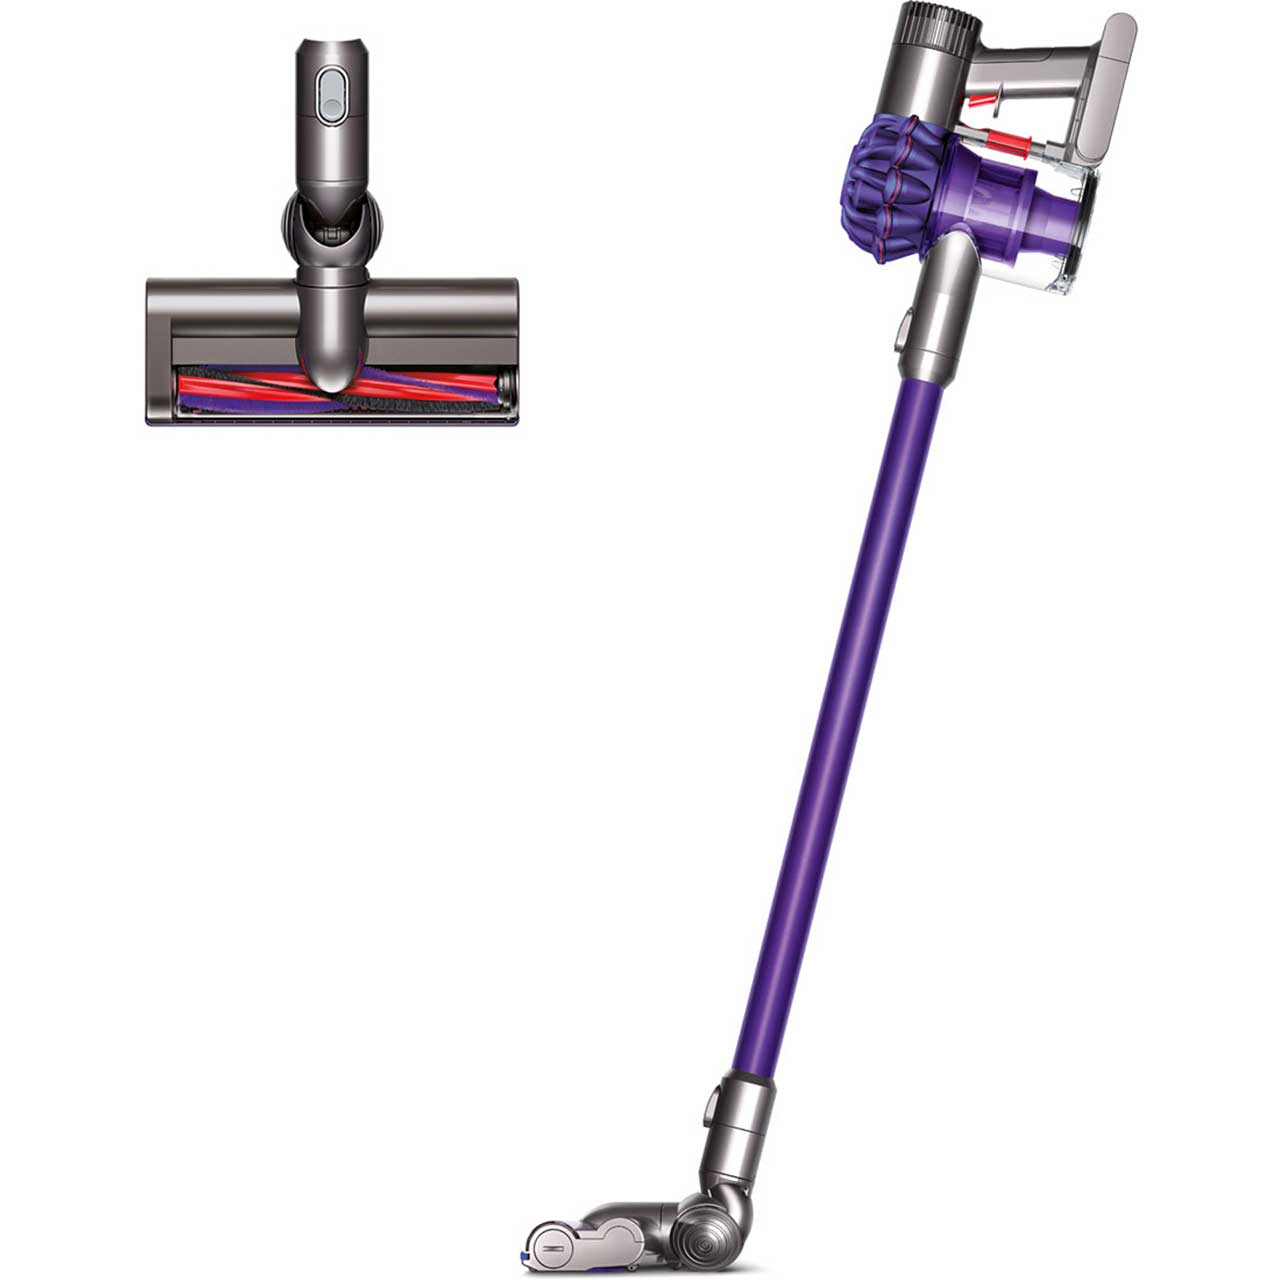 sealed dyson v6 sv04 animal handheld cordless bagless. Black Bedroom Furniture Sets. Home Design Ideas